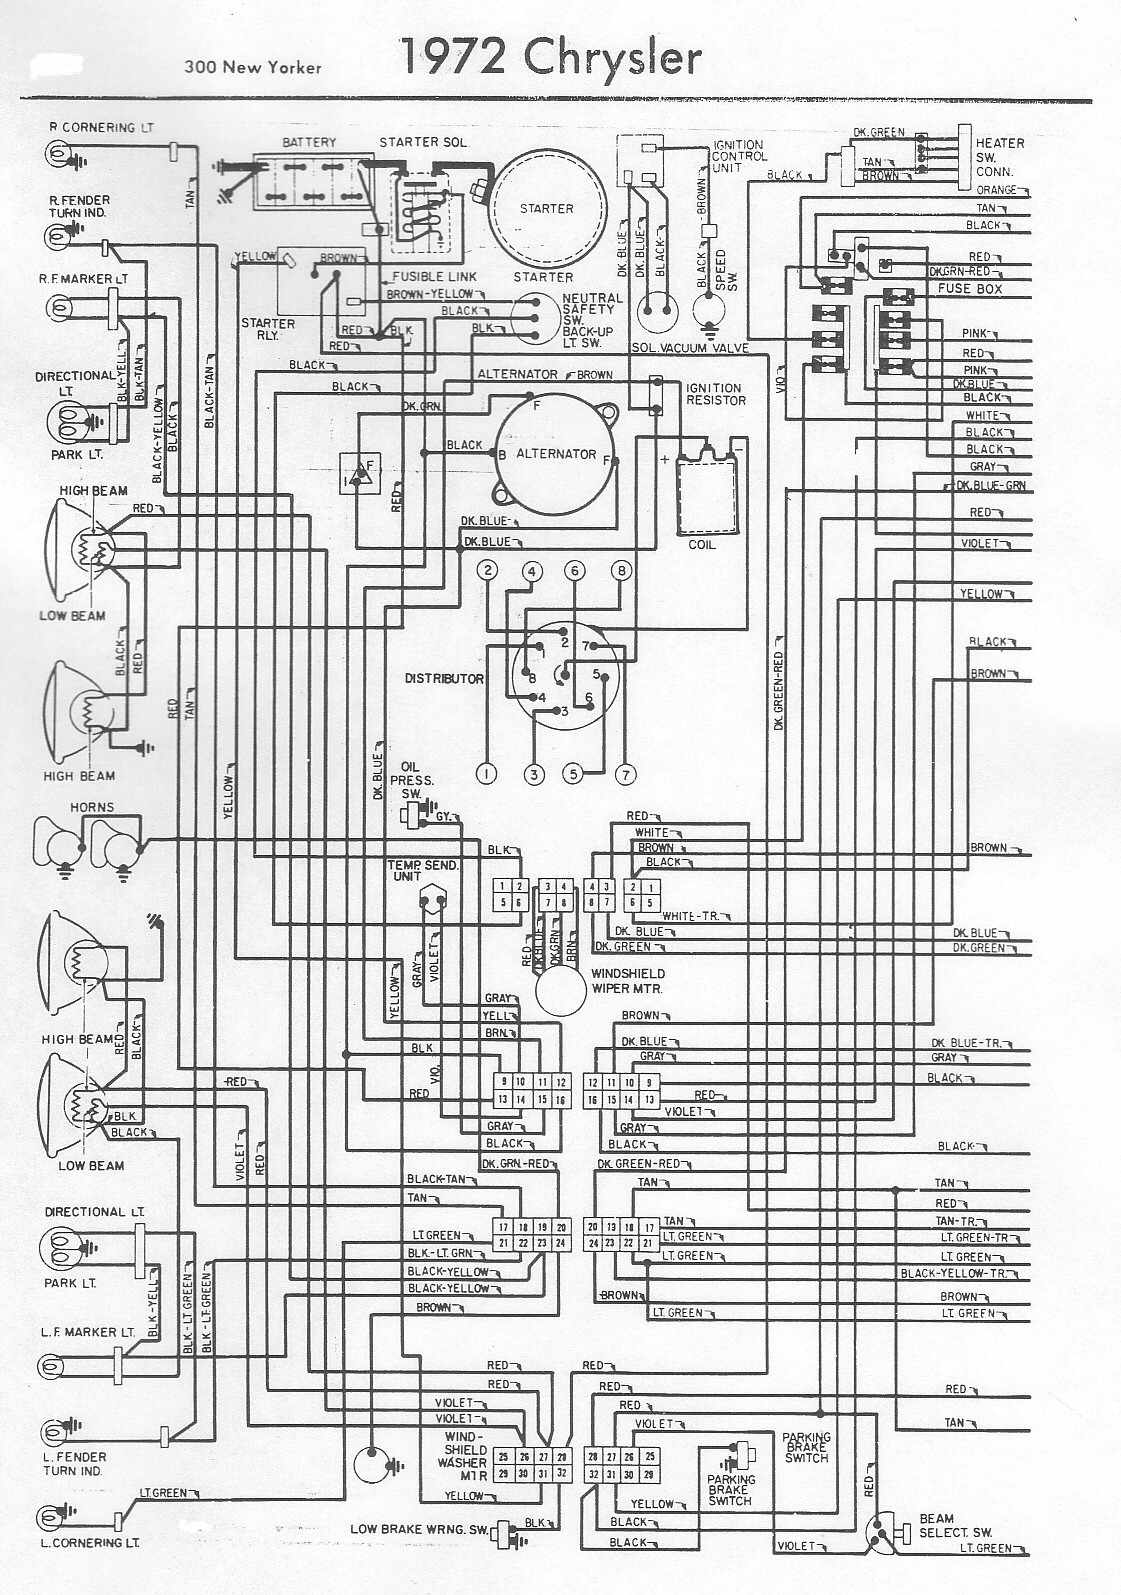 chrysler 300 wiring diagrams free wiring diagram portal power window cable diagram 67 chrysler window motor wiring diagram [ 1121 x 1595 Pixel ]